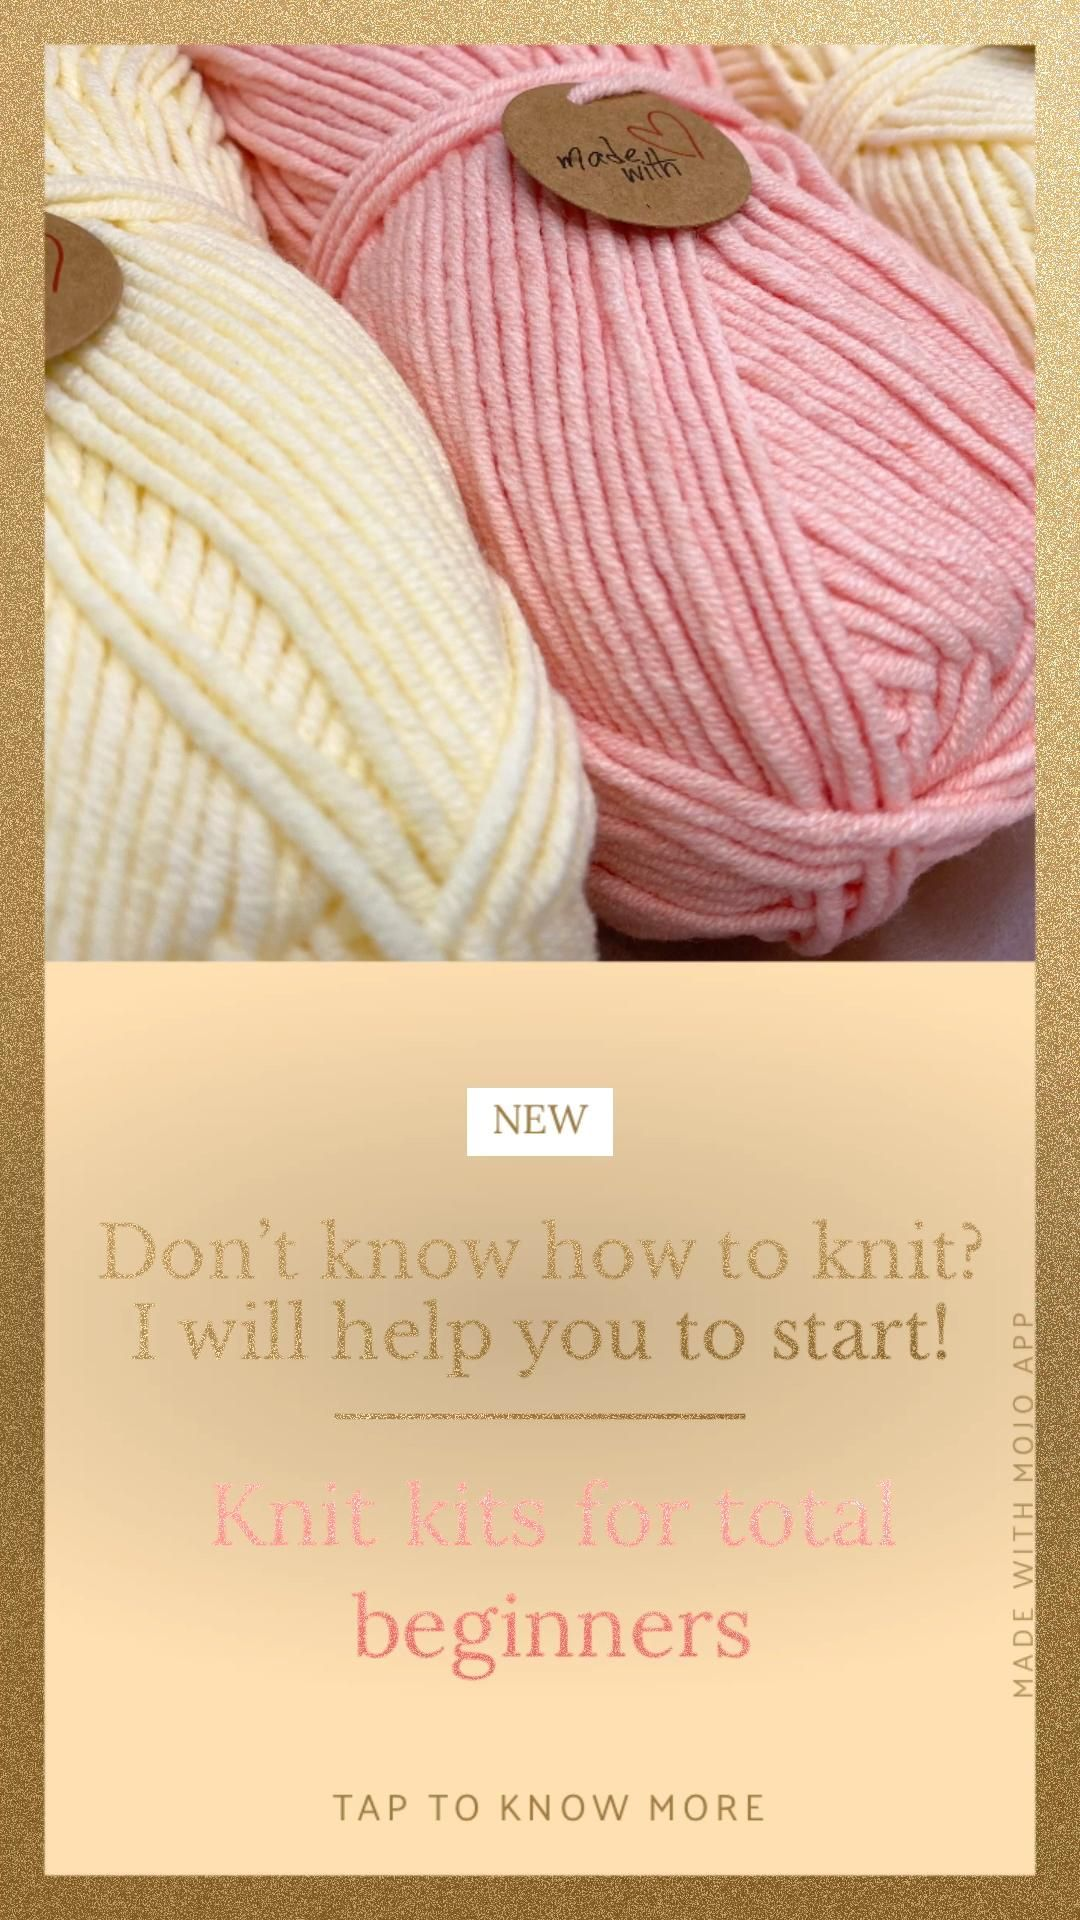 Photo of How to start knit for total beginners tutorial DIY knitting kit